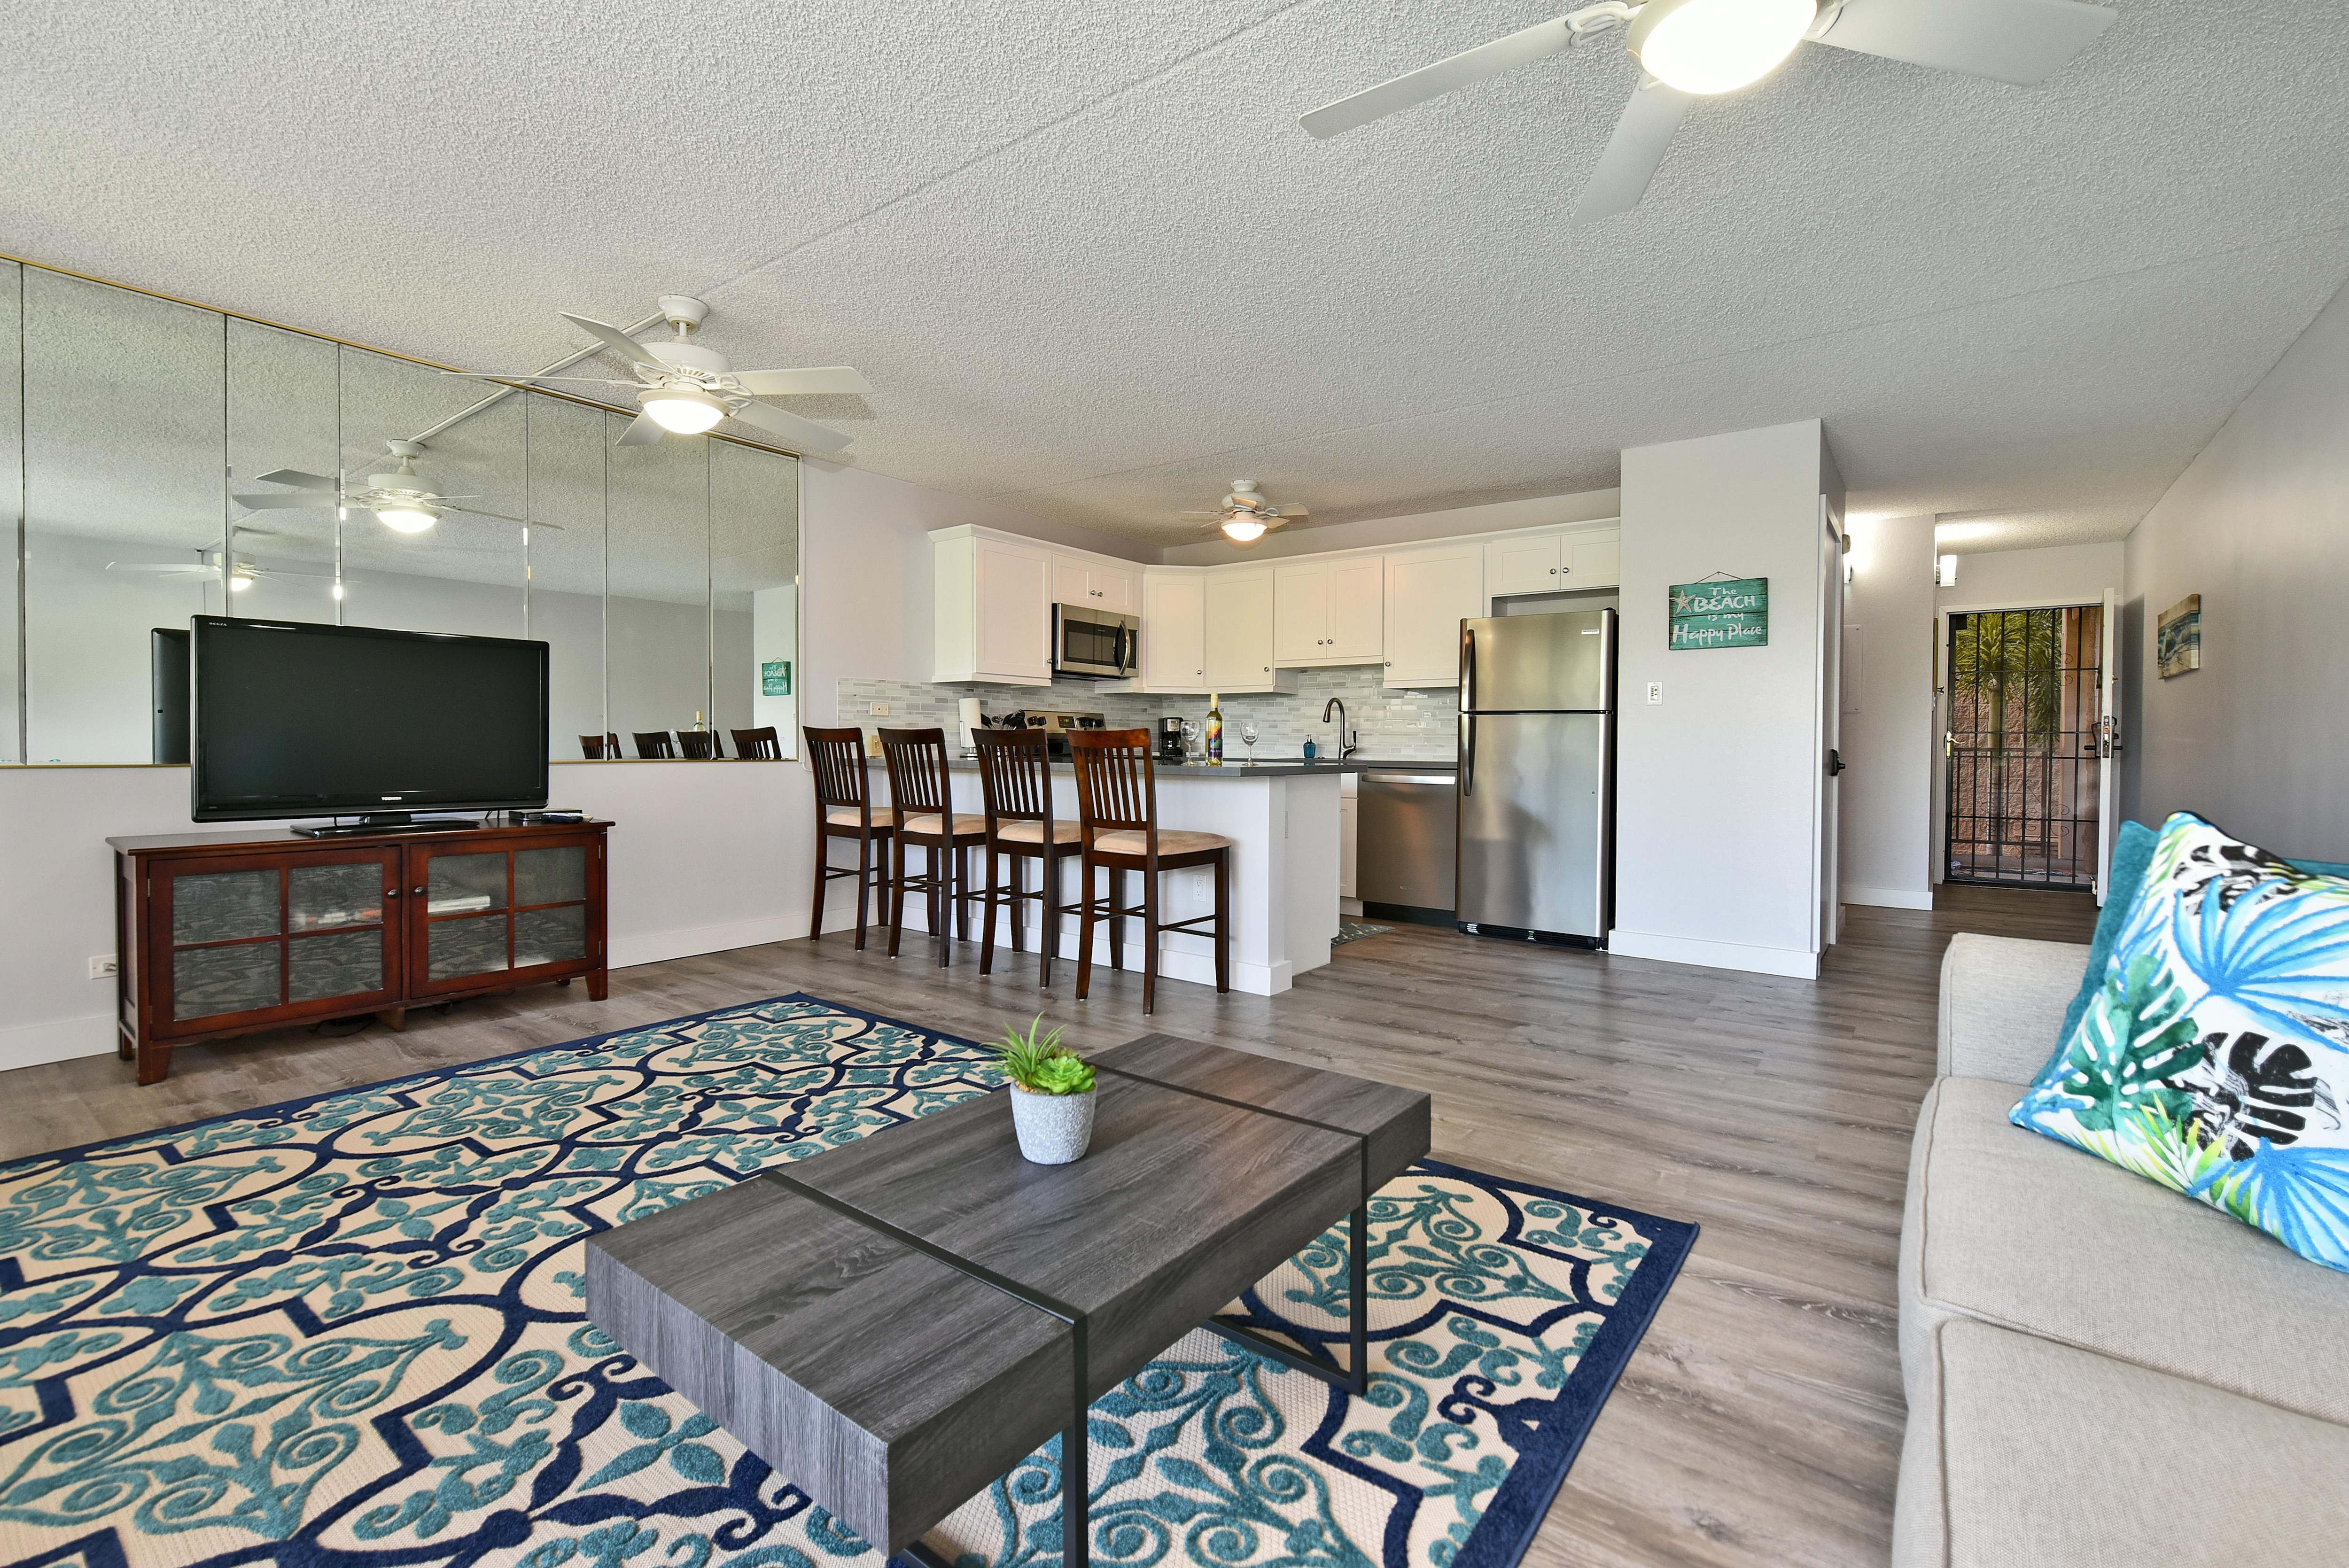 Property Image 1 - Bright updated condo across from Kamaole beach